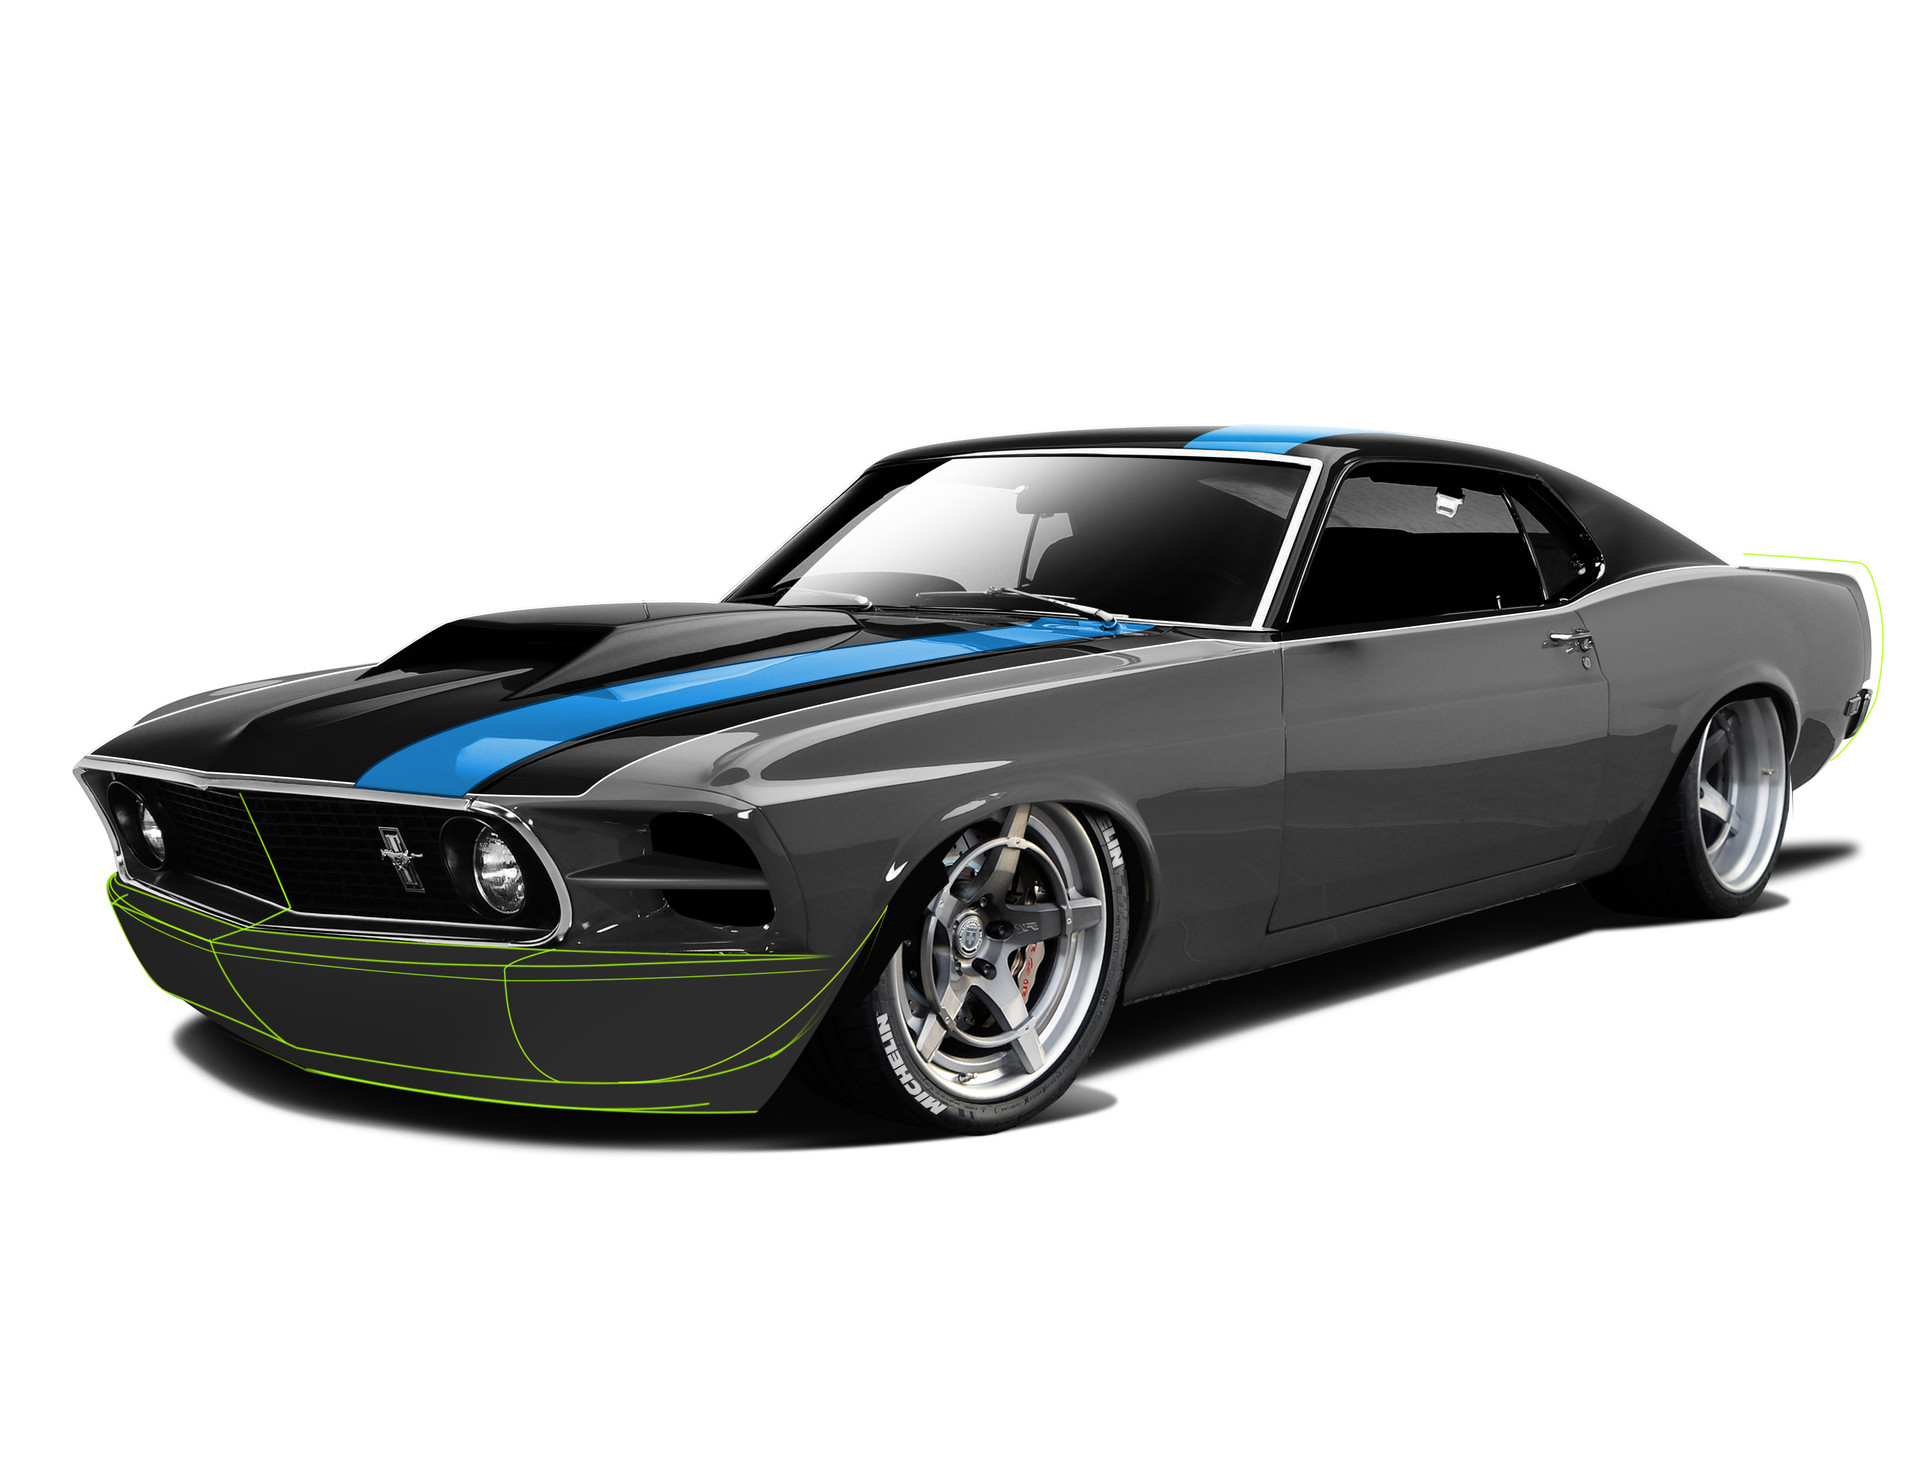 Mustang Concept >> Matt Bernal - Renegade 69 Mustang Wide Body